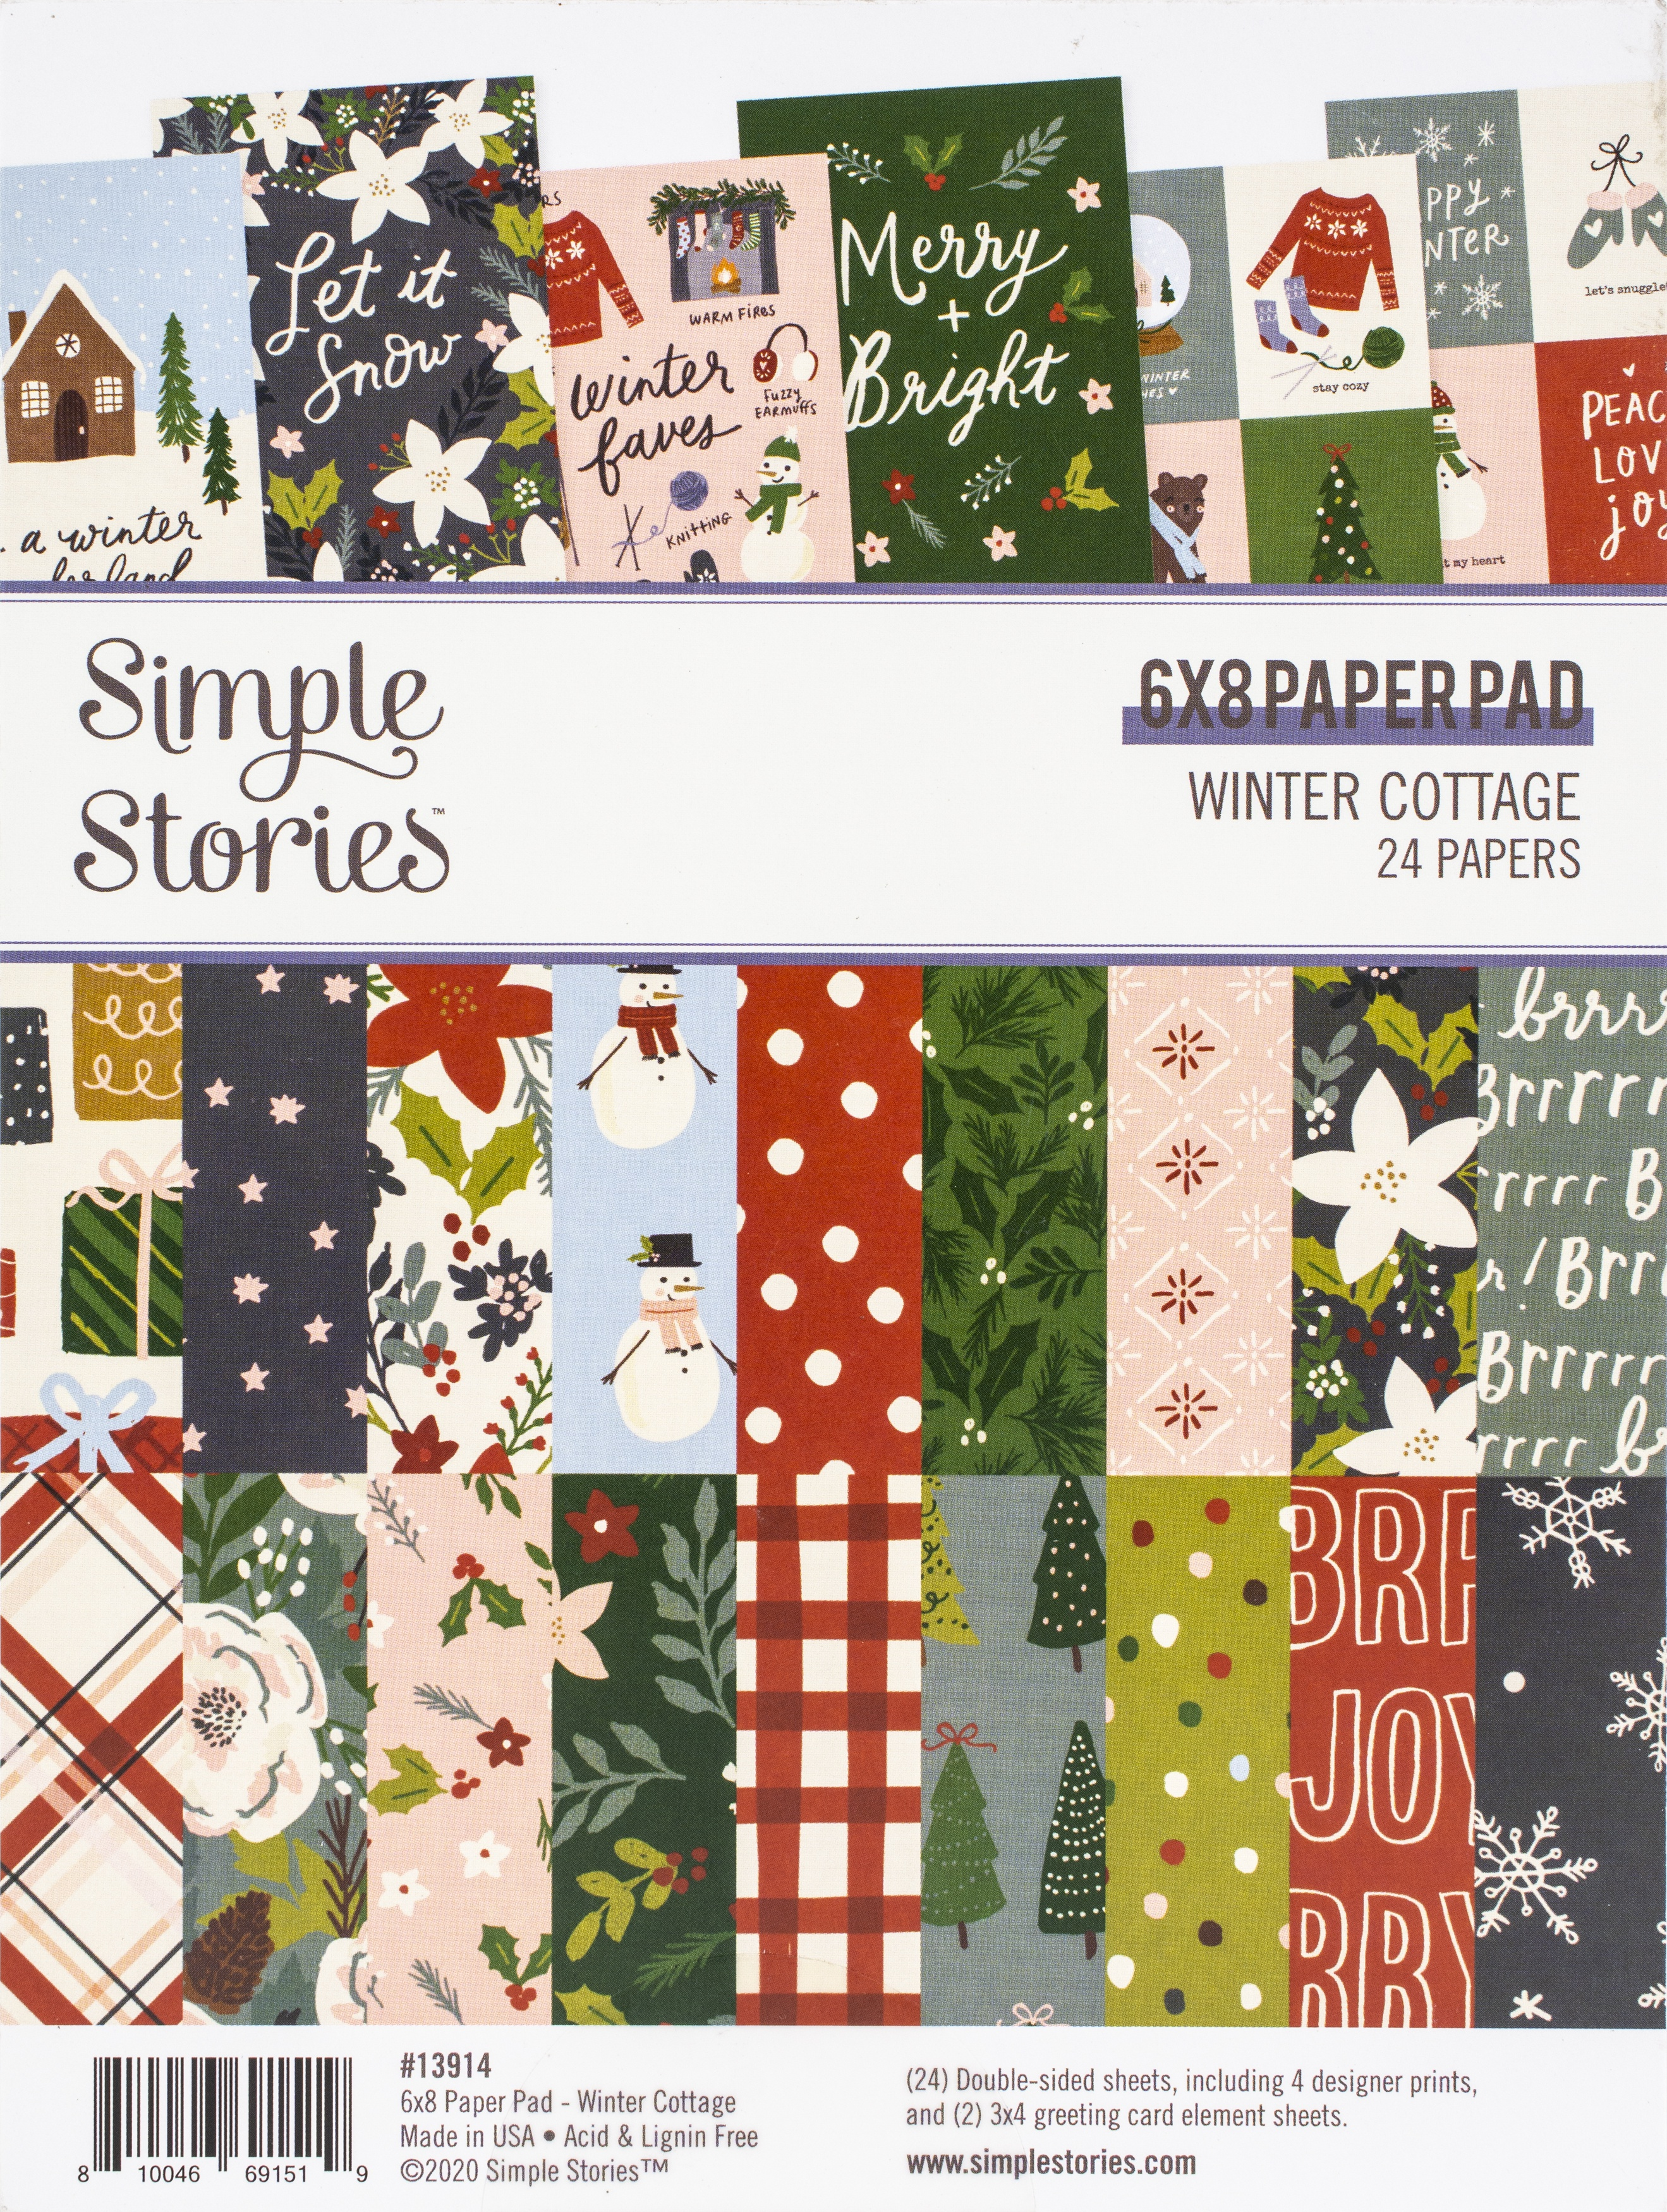 Simple Stories Winter Cottage - 6x8 Paper Pad